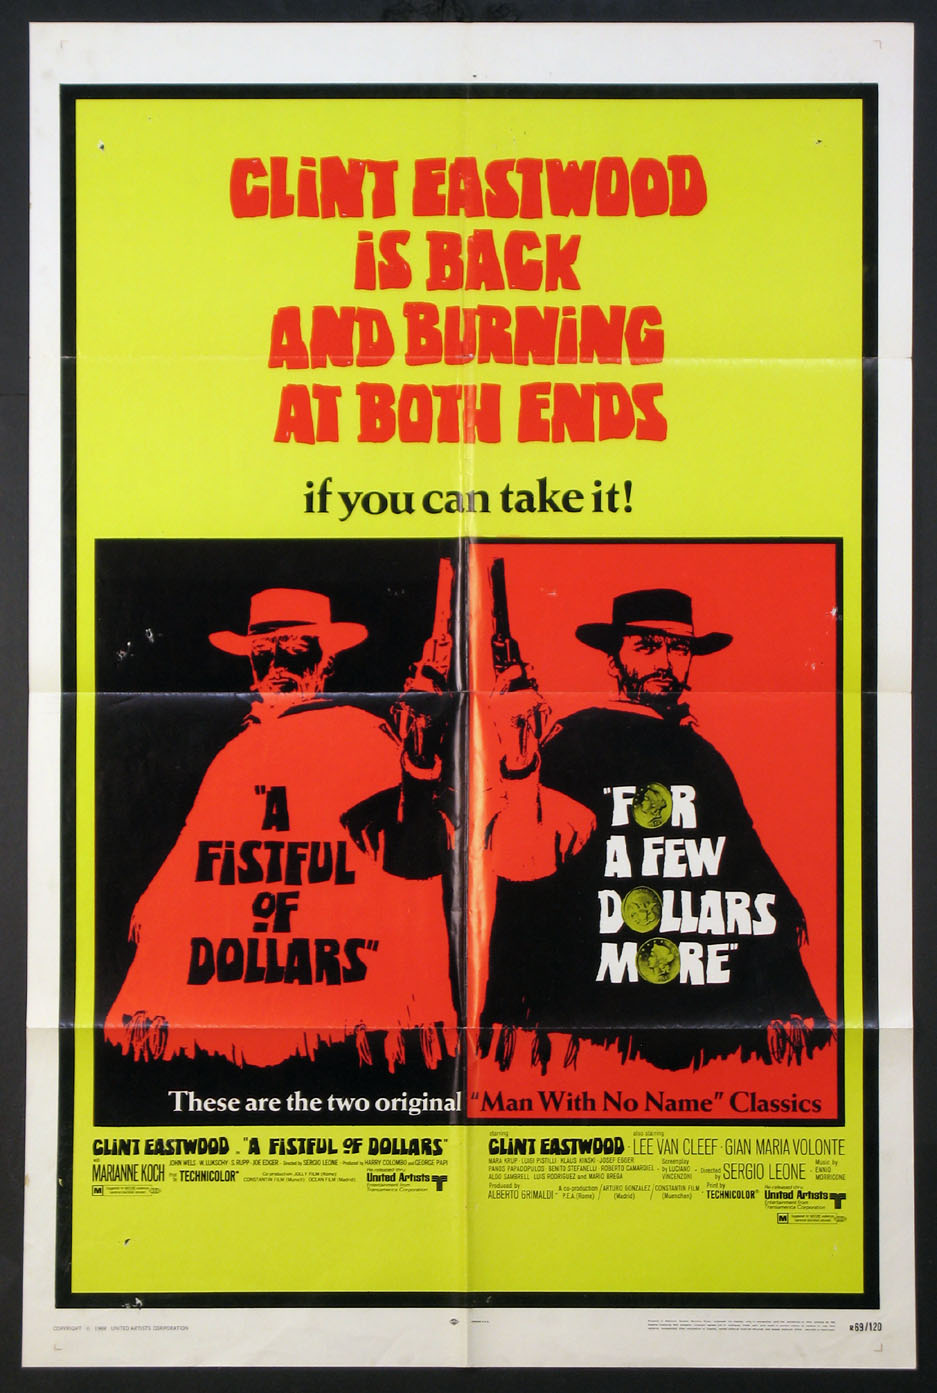 FISTFUL OF DOLLARS / FOR A FEW DOLLARS MORE @ FilmPosters.com